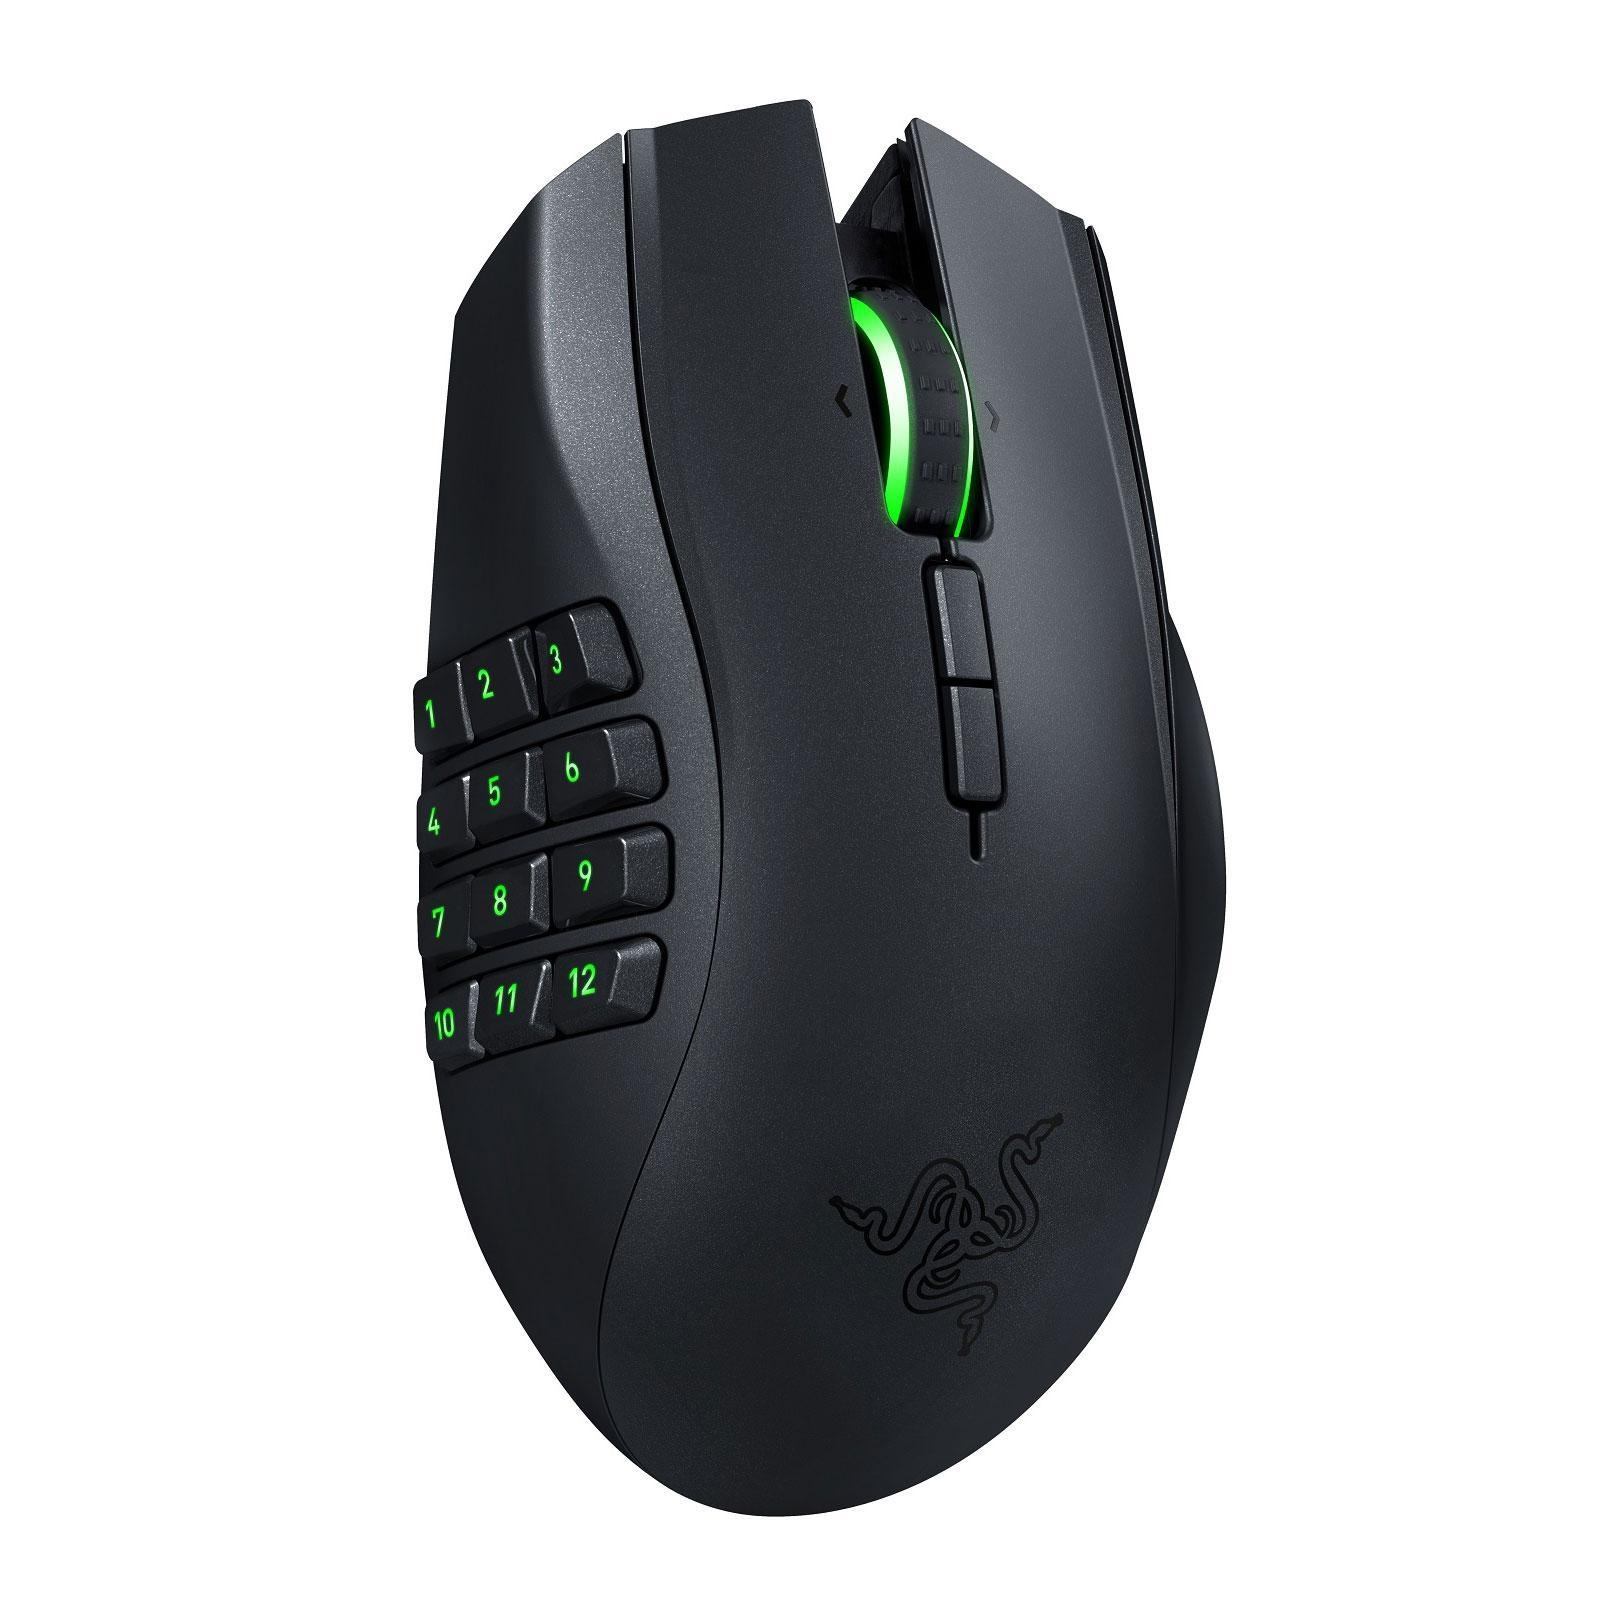 Souris Razer Naga Epic Chroma MMO Wireless - Noir